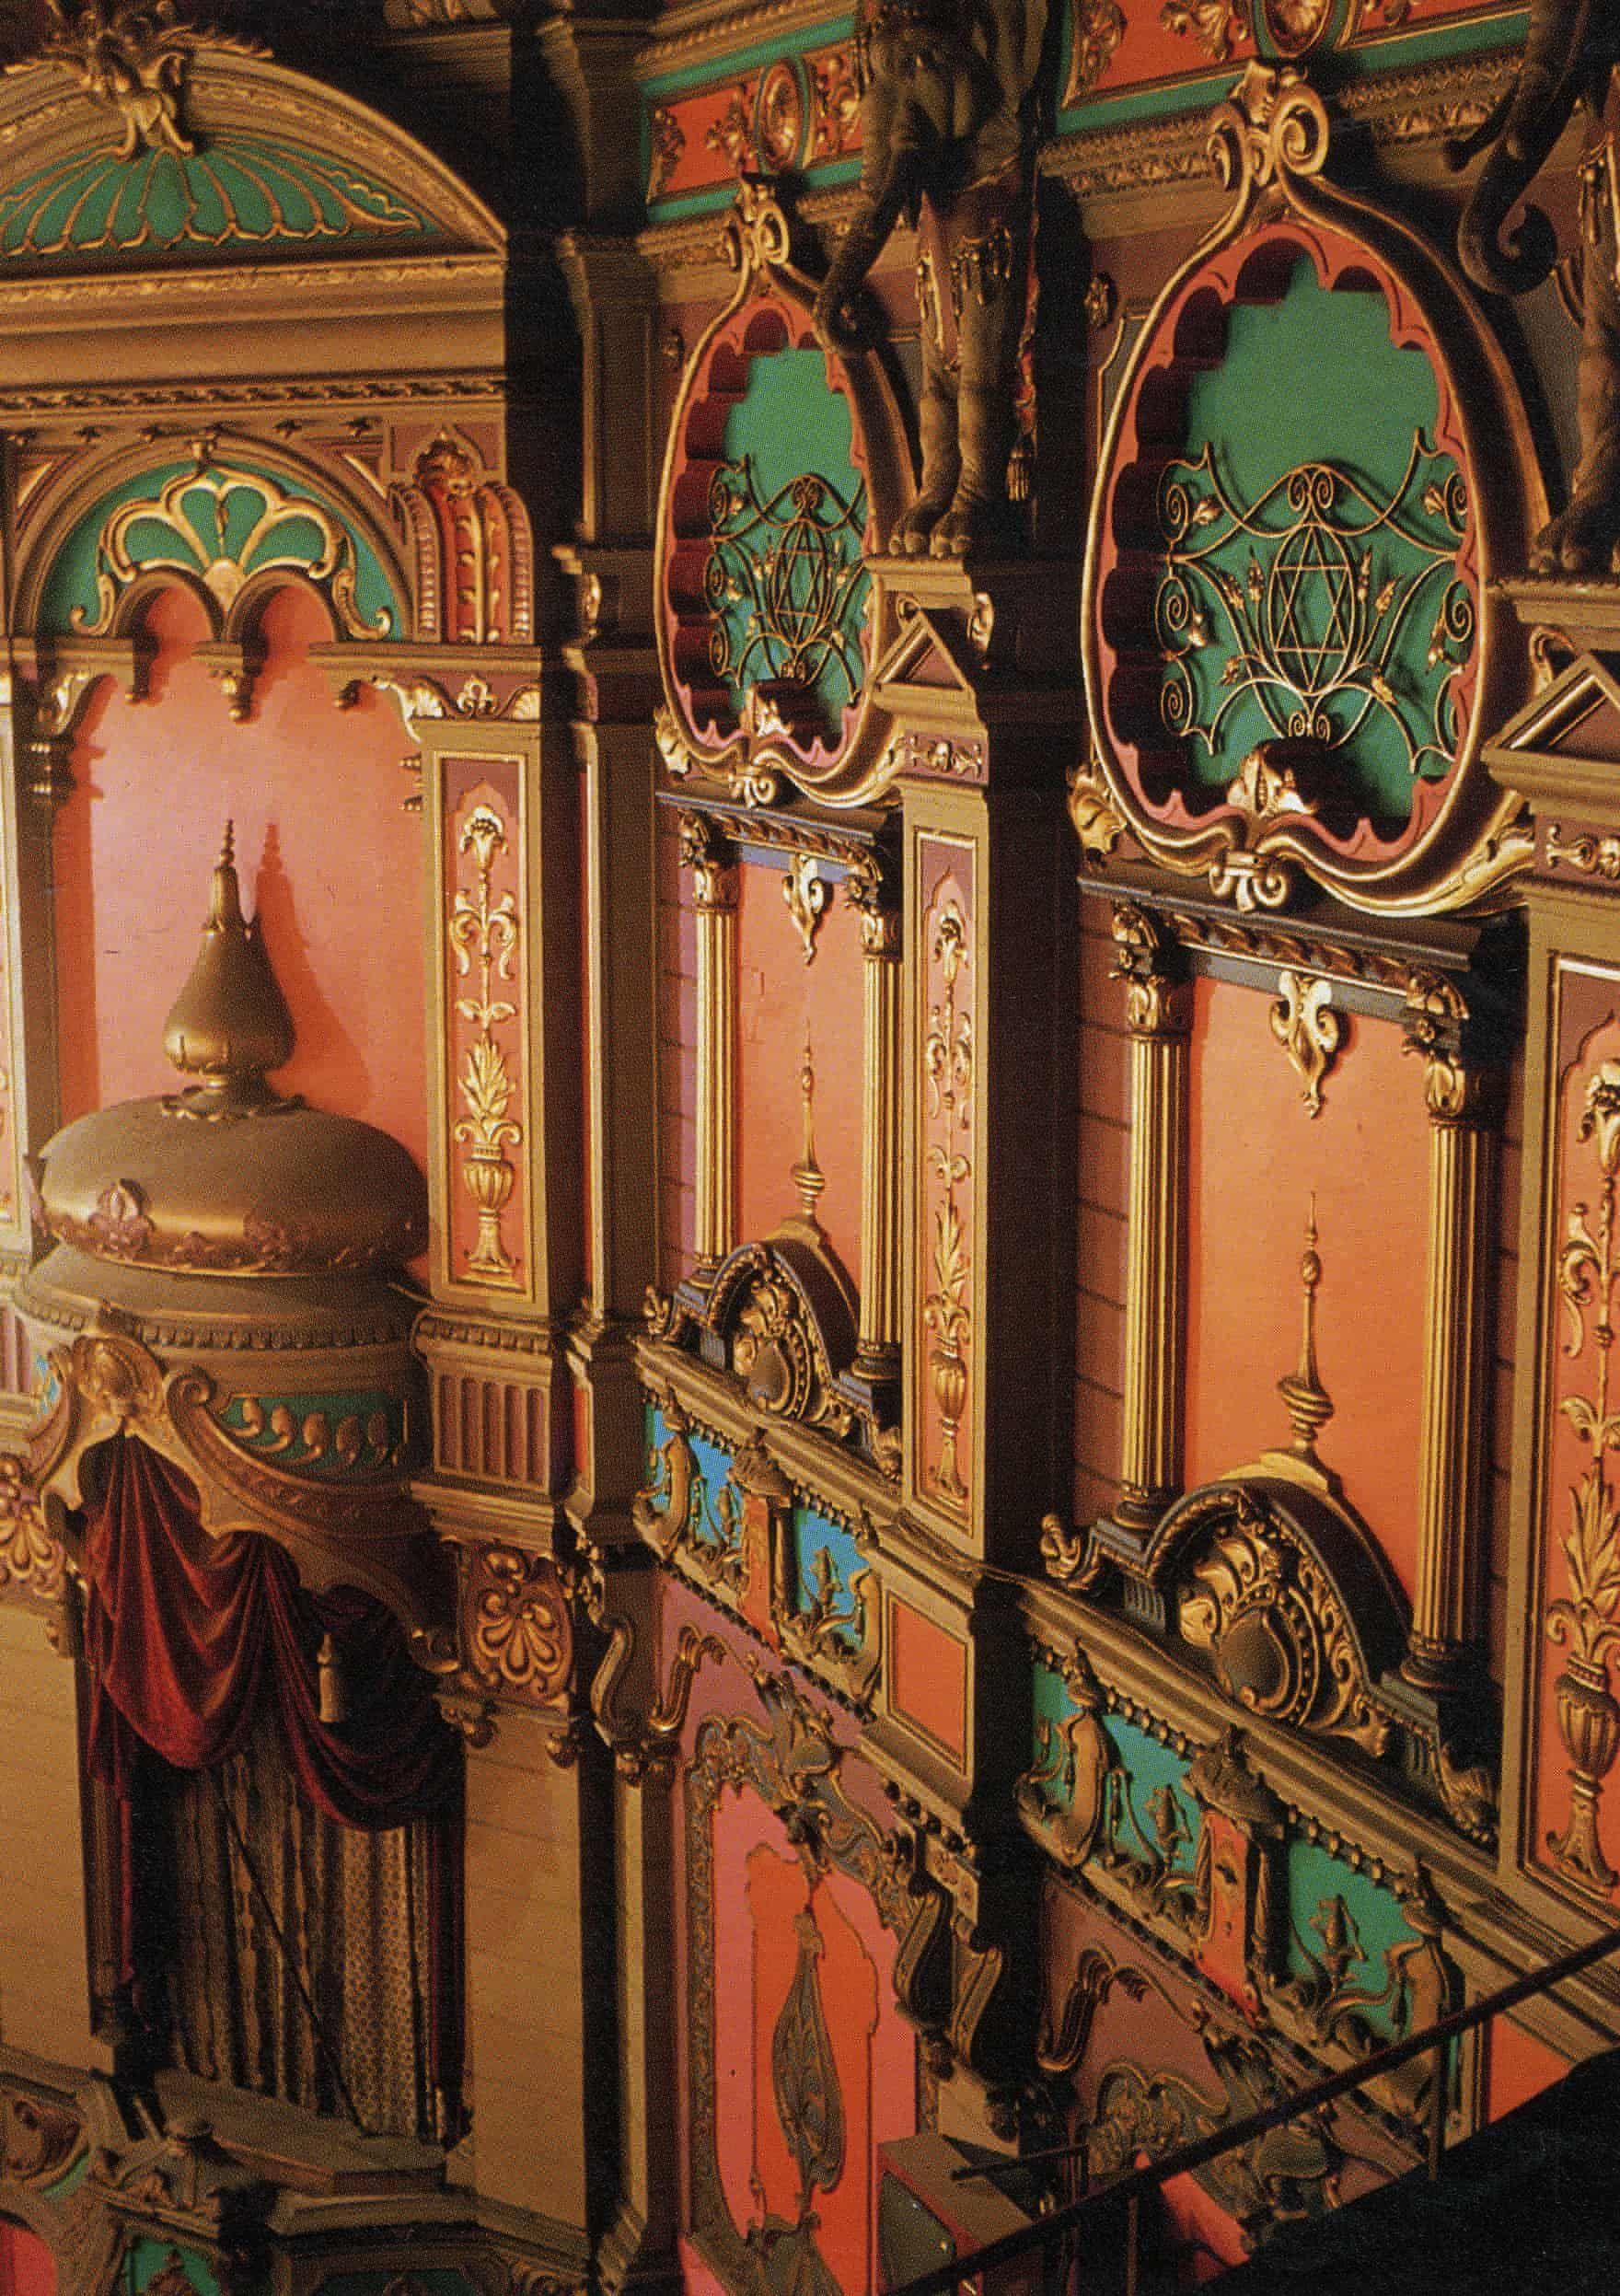 The Ornate Interior Of The Liverpool Olympia Now Eventim Olympia Reflects The Building S Past With Decorations Theatre Architecture Cave Paintings Painting